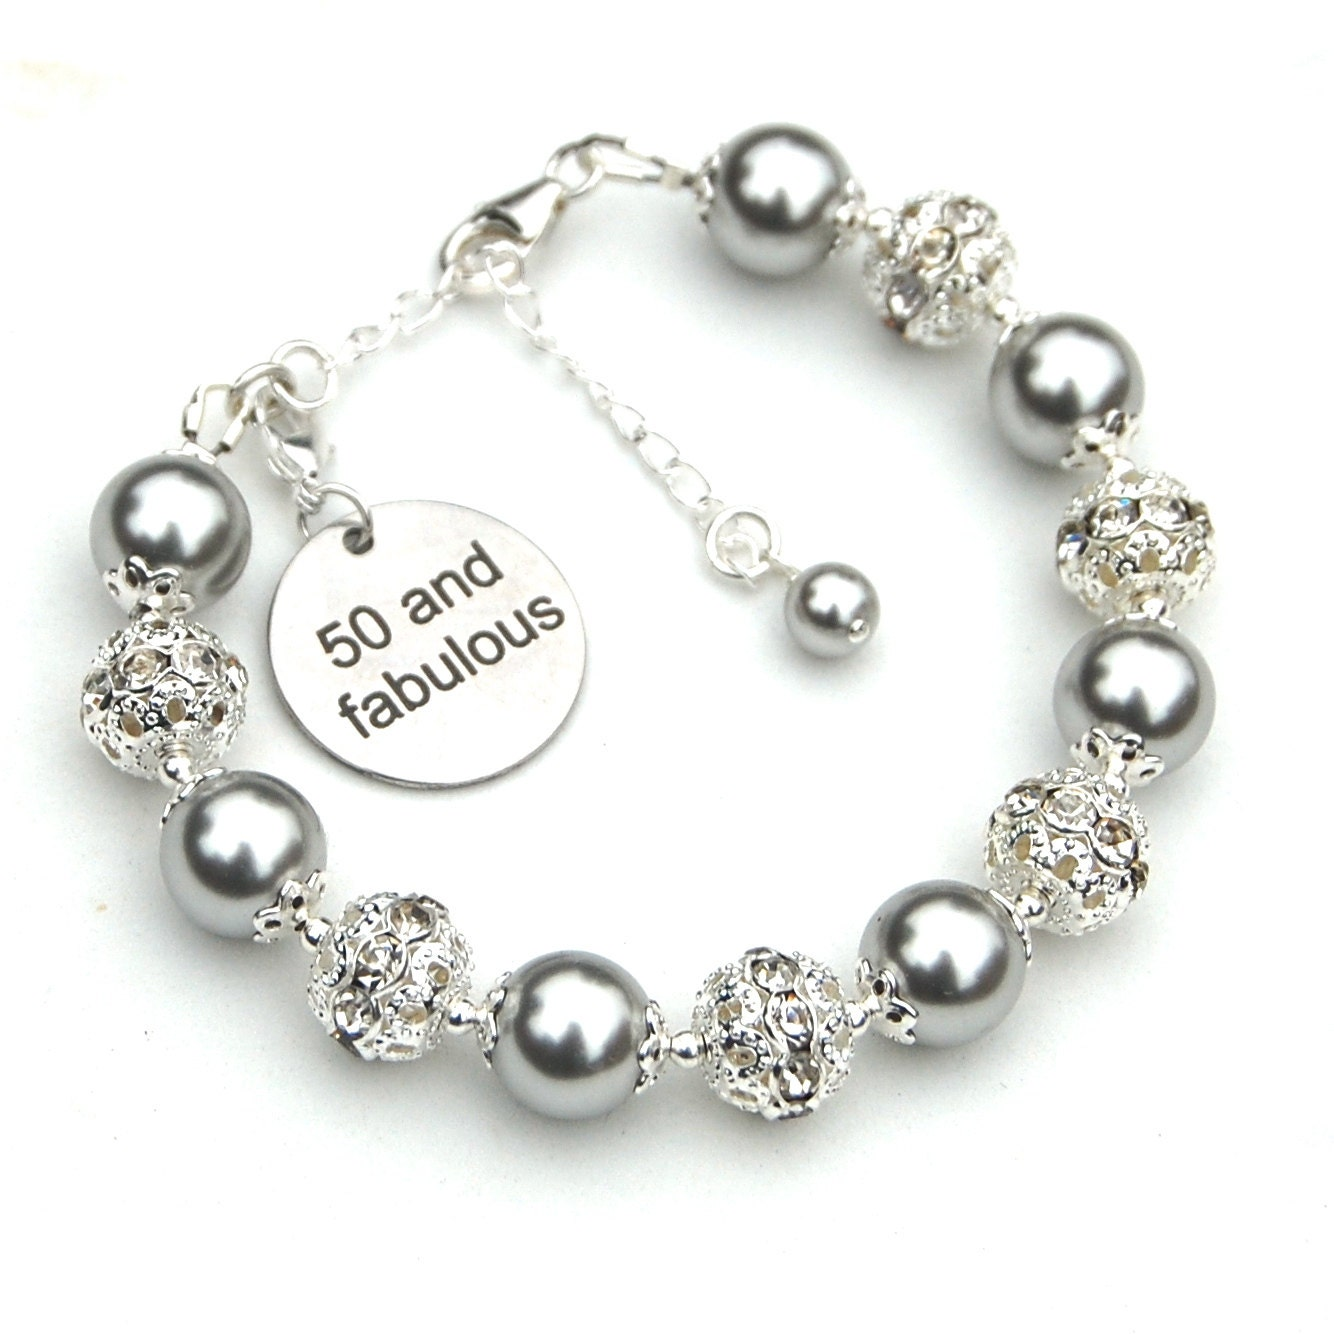 Special Sister 50th Birthday Charm Bracelet with Gift Box Women's Jewellery s0ggJlH1zd